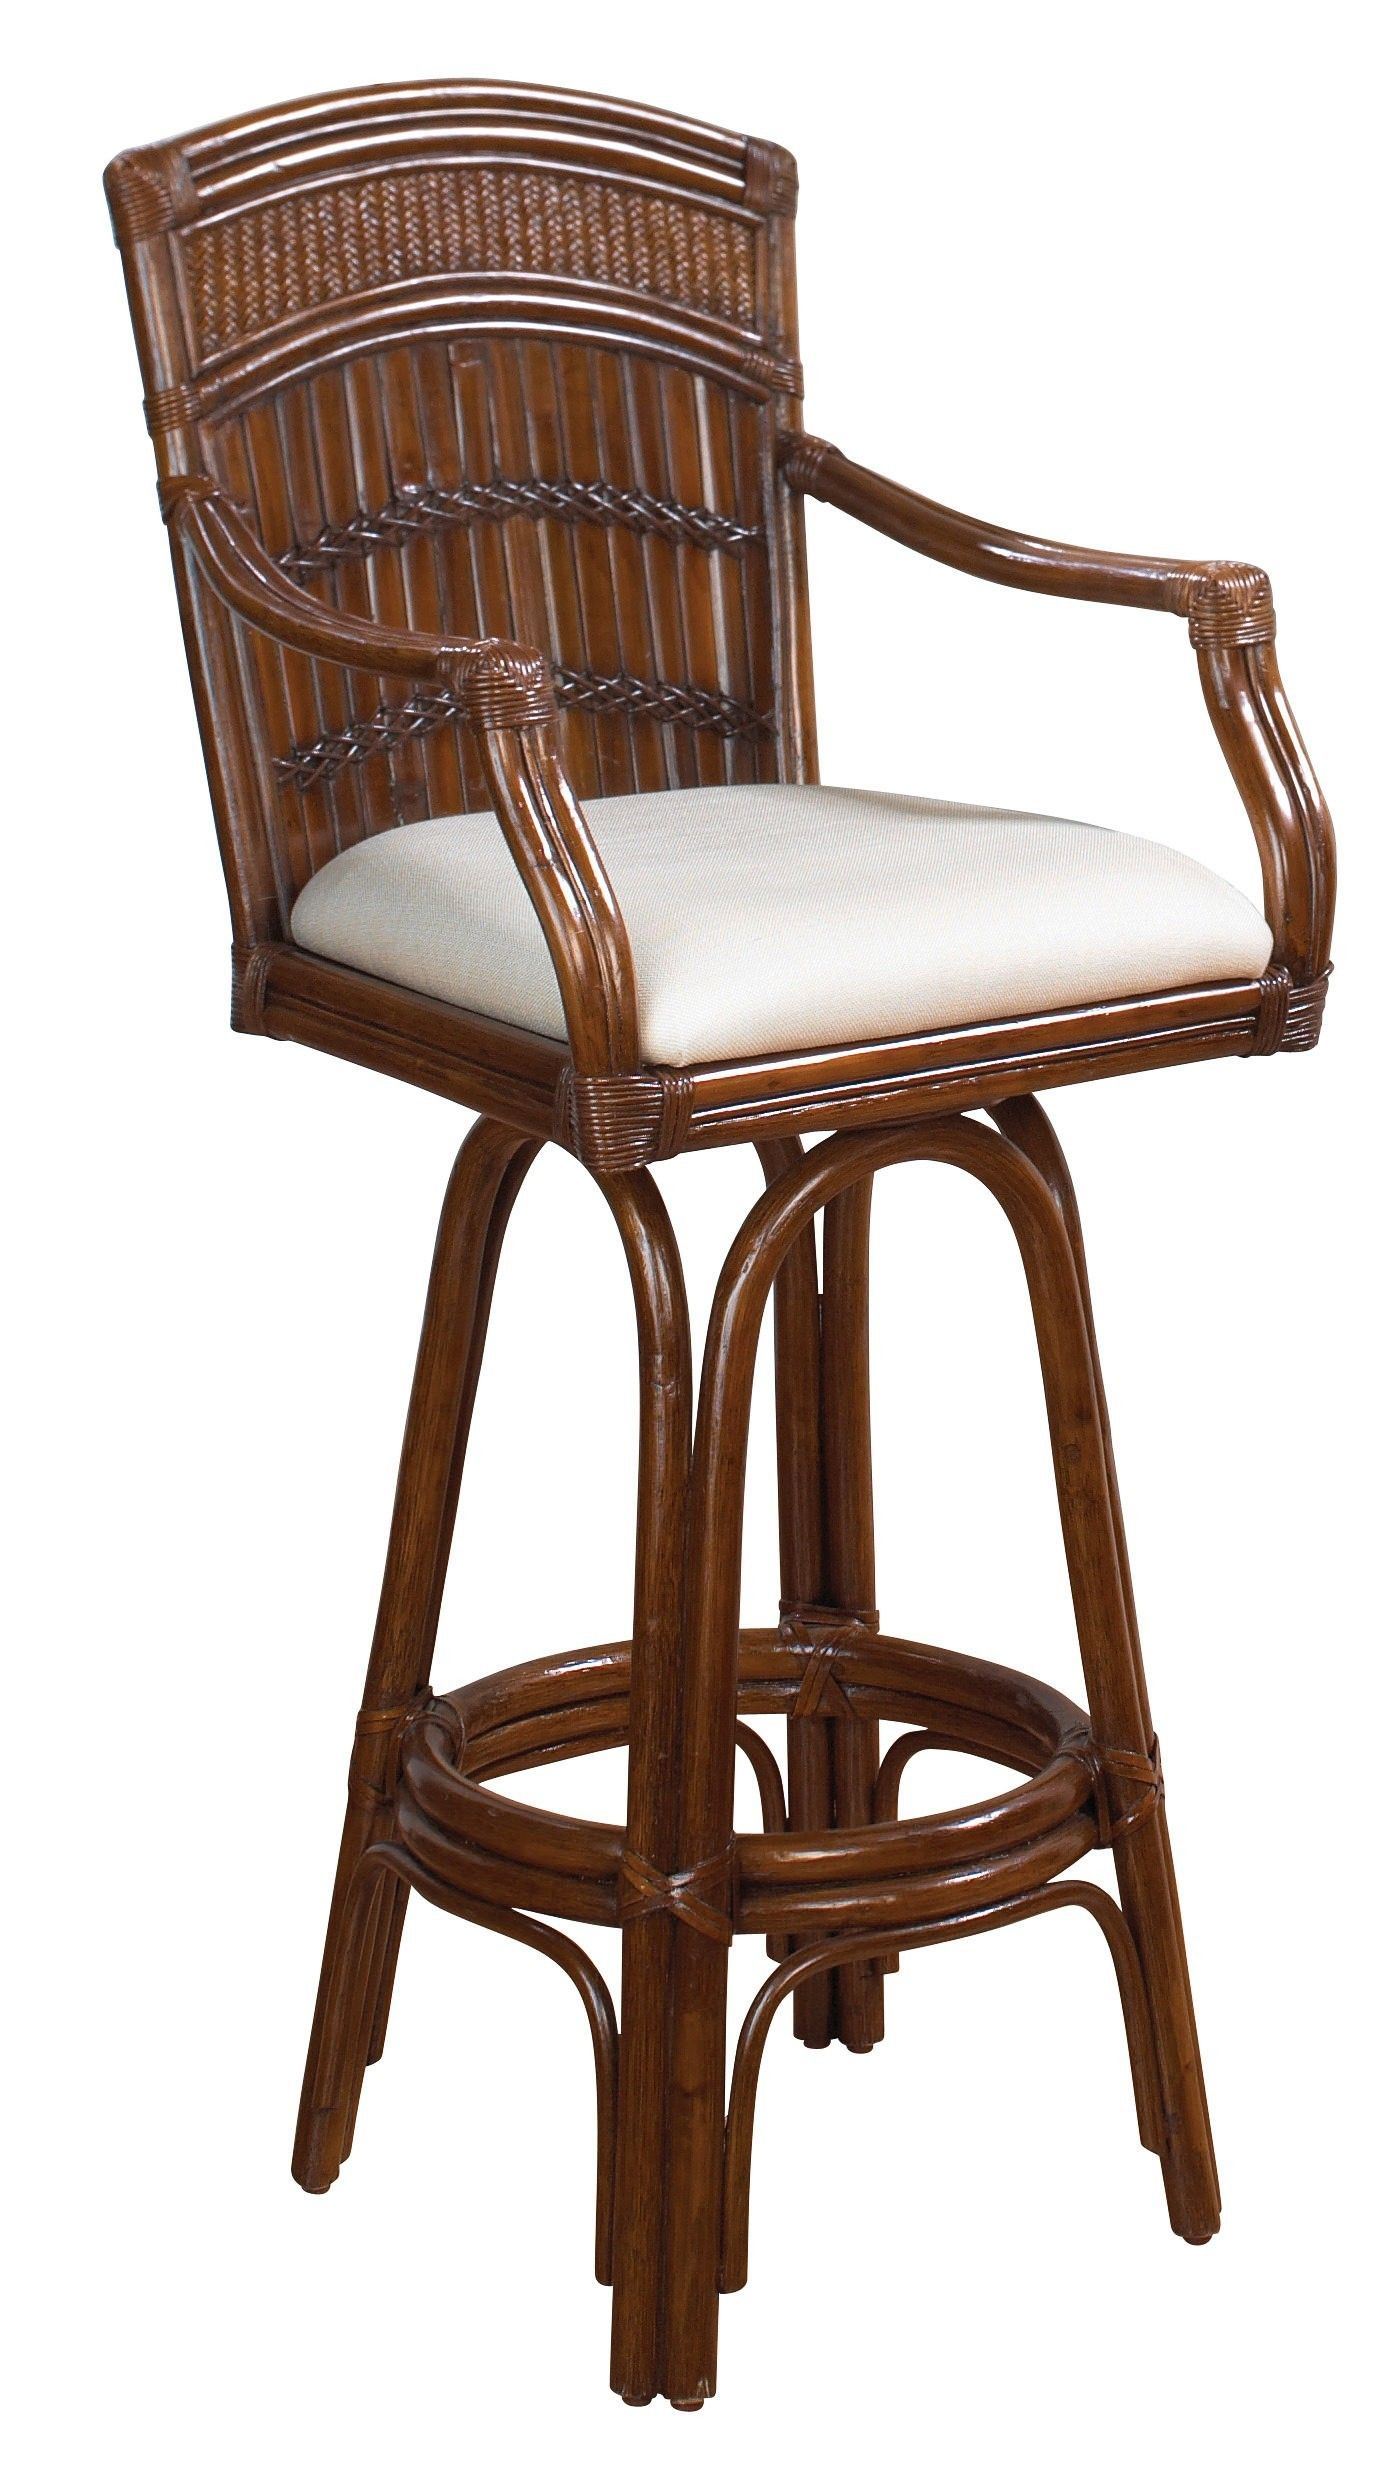 Furniture rattan bar stool with brown varnished bamboo back and white upholstered seat bamboo bar stools